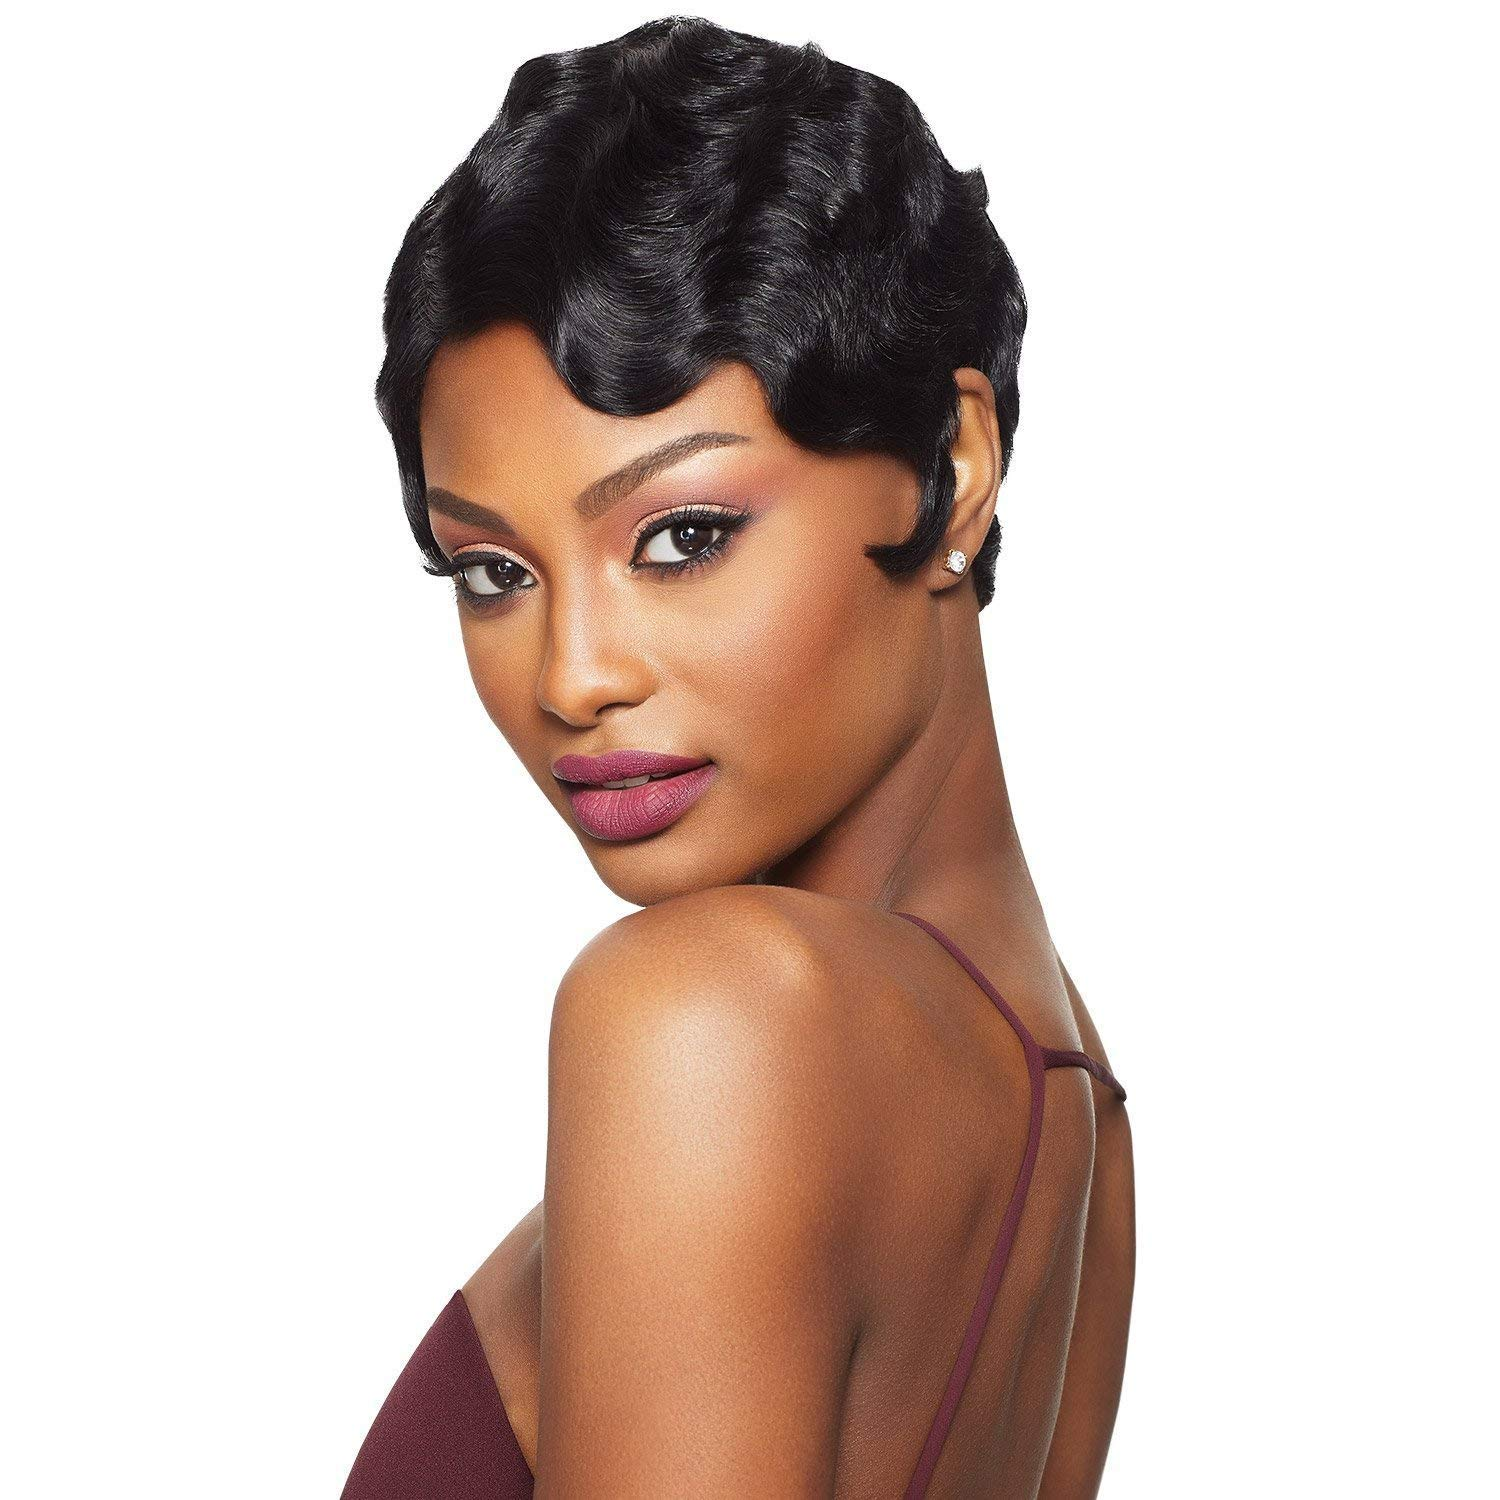 Amazon Com Black Wine 100 Human Hair Finger Wave Wig Sissi S Fashion Hair Pixie Cut Wig Big Curls Short Remy Hair Wig Water Wave Mommy Wig For Fashion Women 1b Beauty